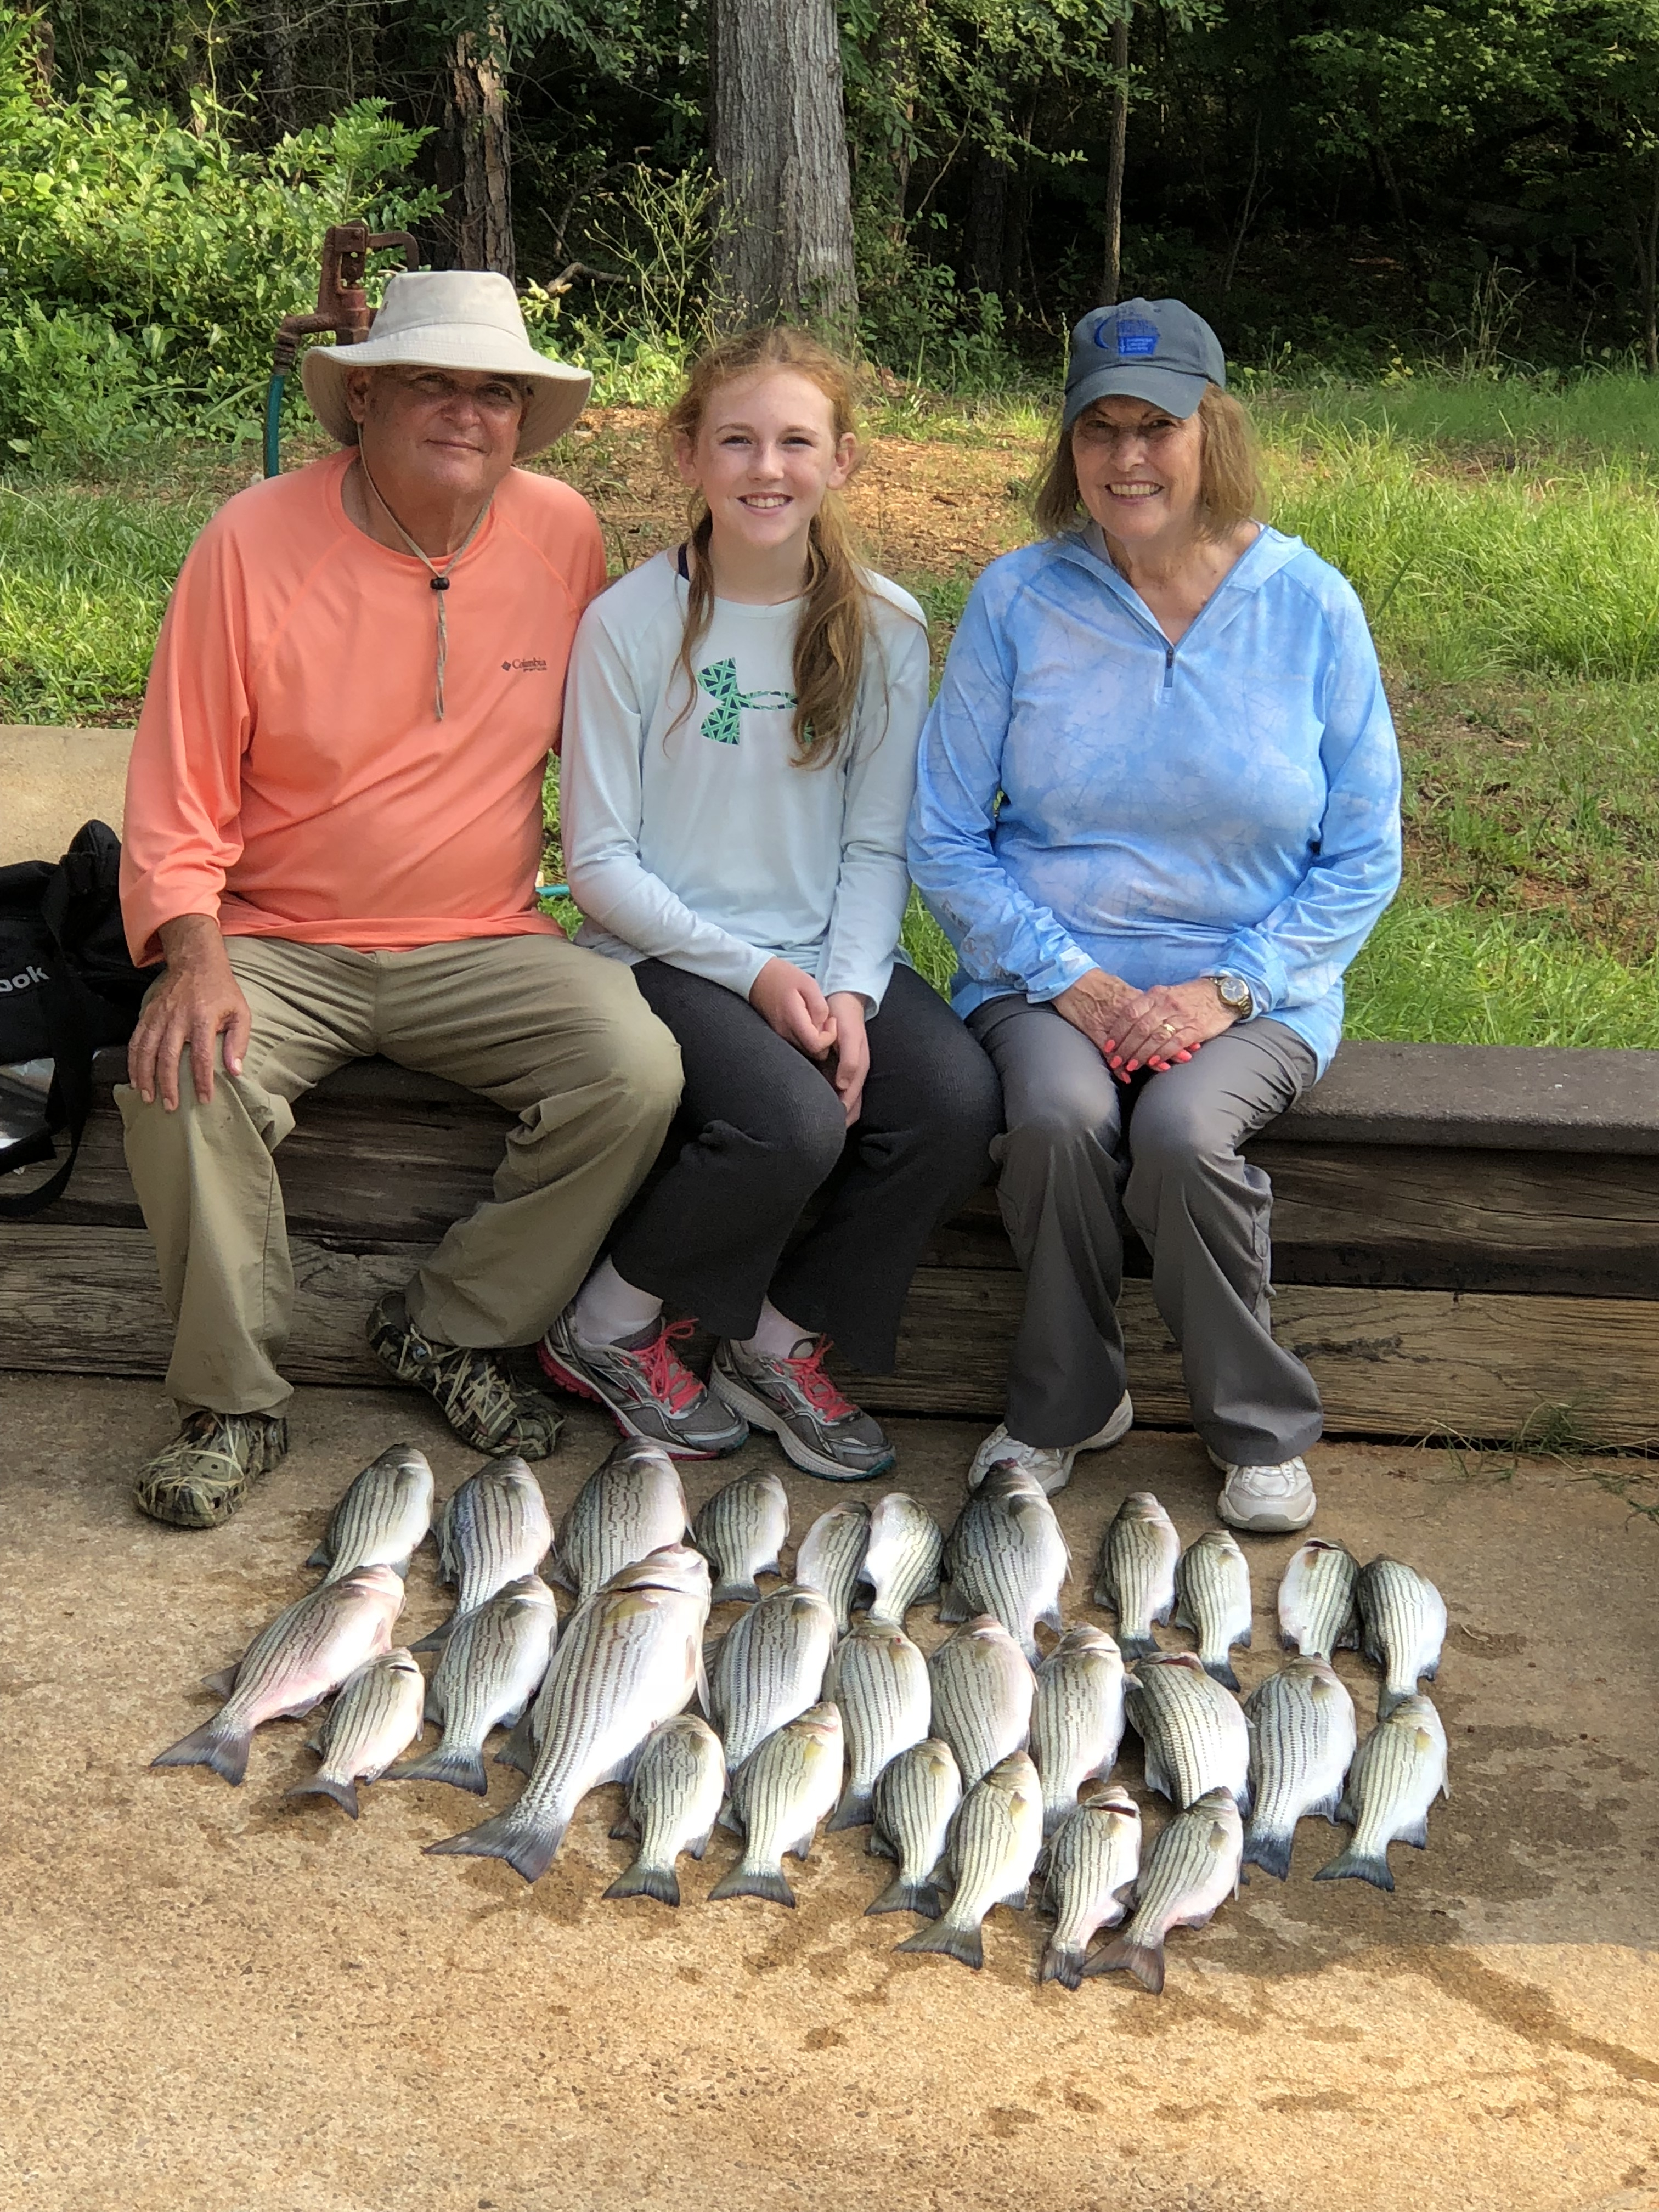 June 11, 2018 Ricky, Parker and Juanita Cleghorn with their catch of the day. IMG_2164